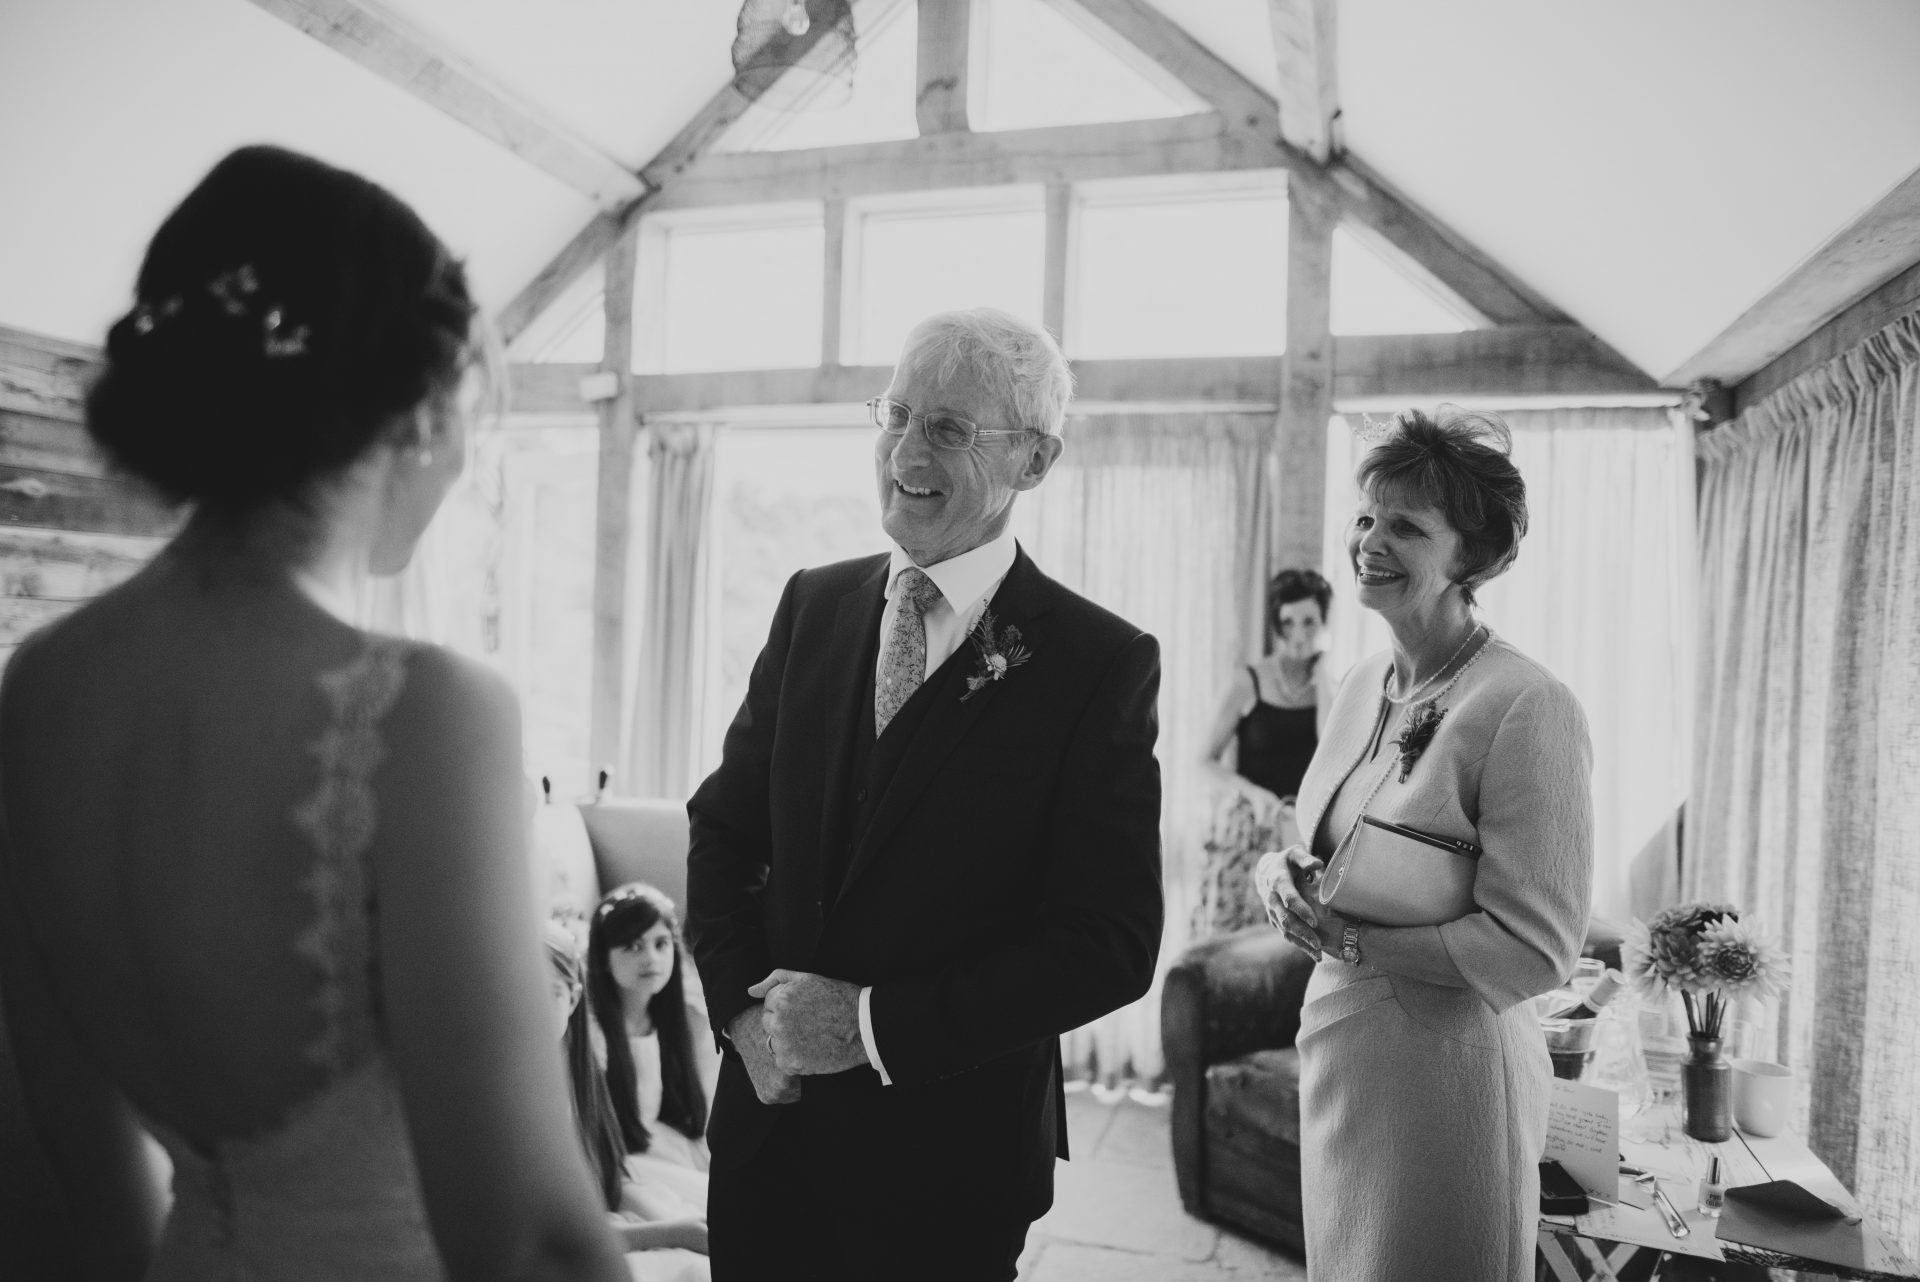 Nancarrow Farm Wedding Photographs - Stewart Girvan Photography